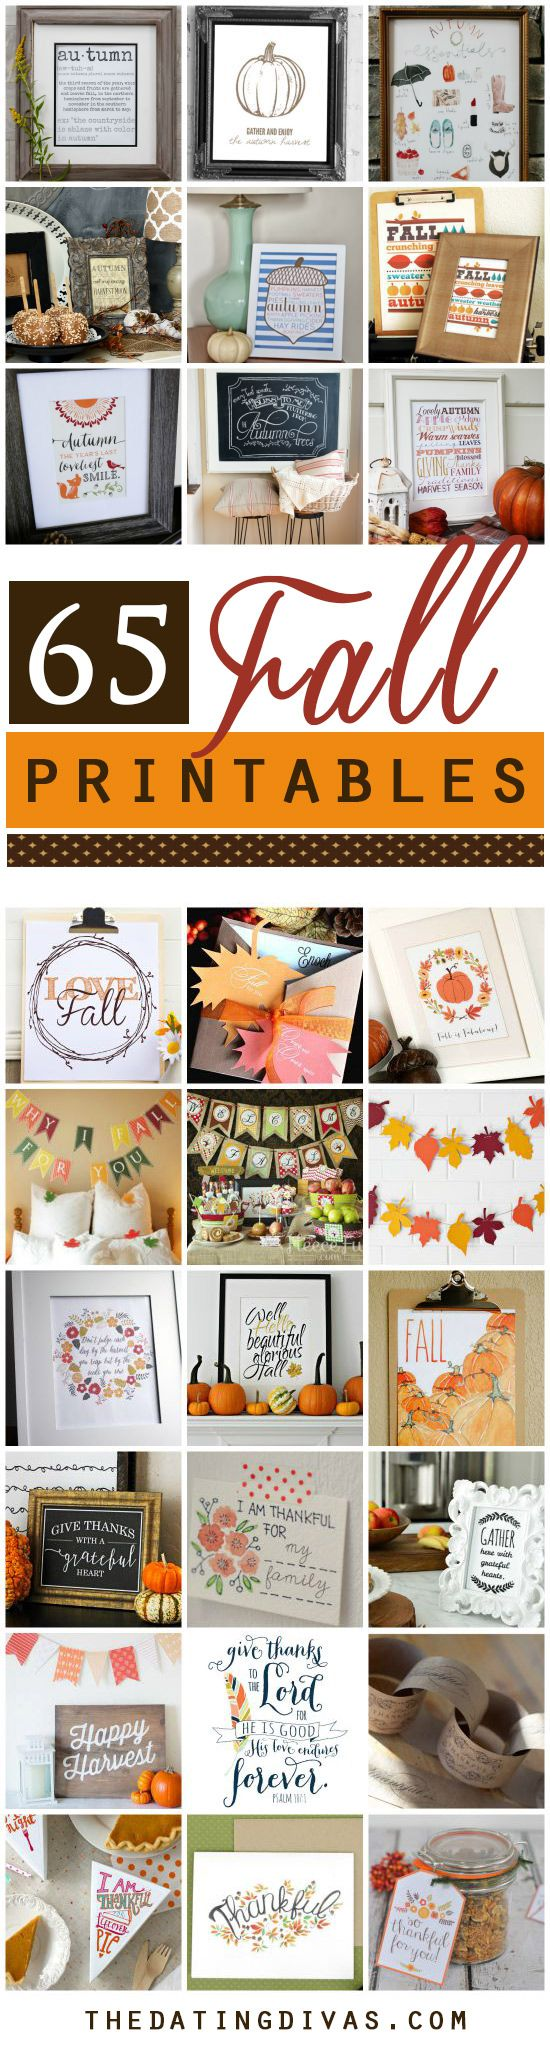 Tons of Fall Printables to make decorating so easy!